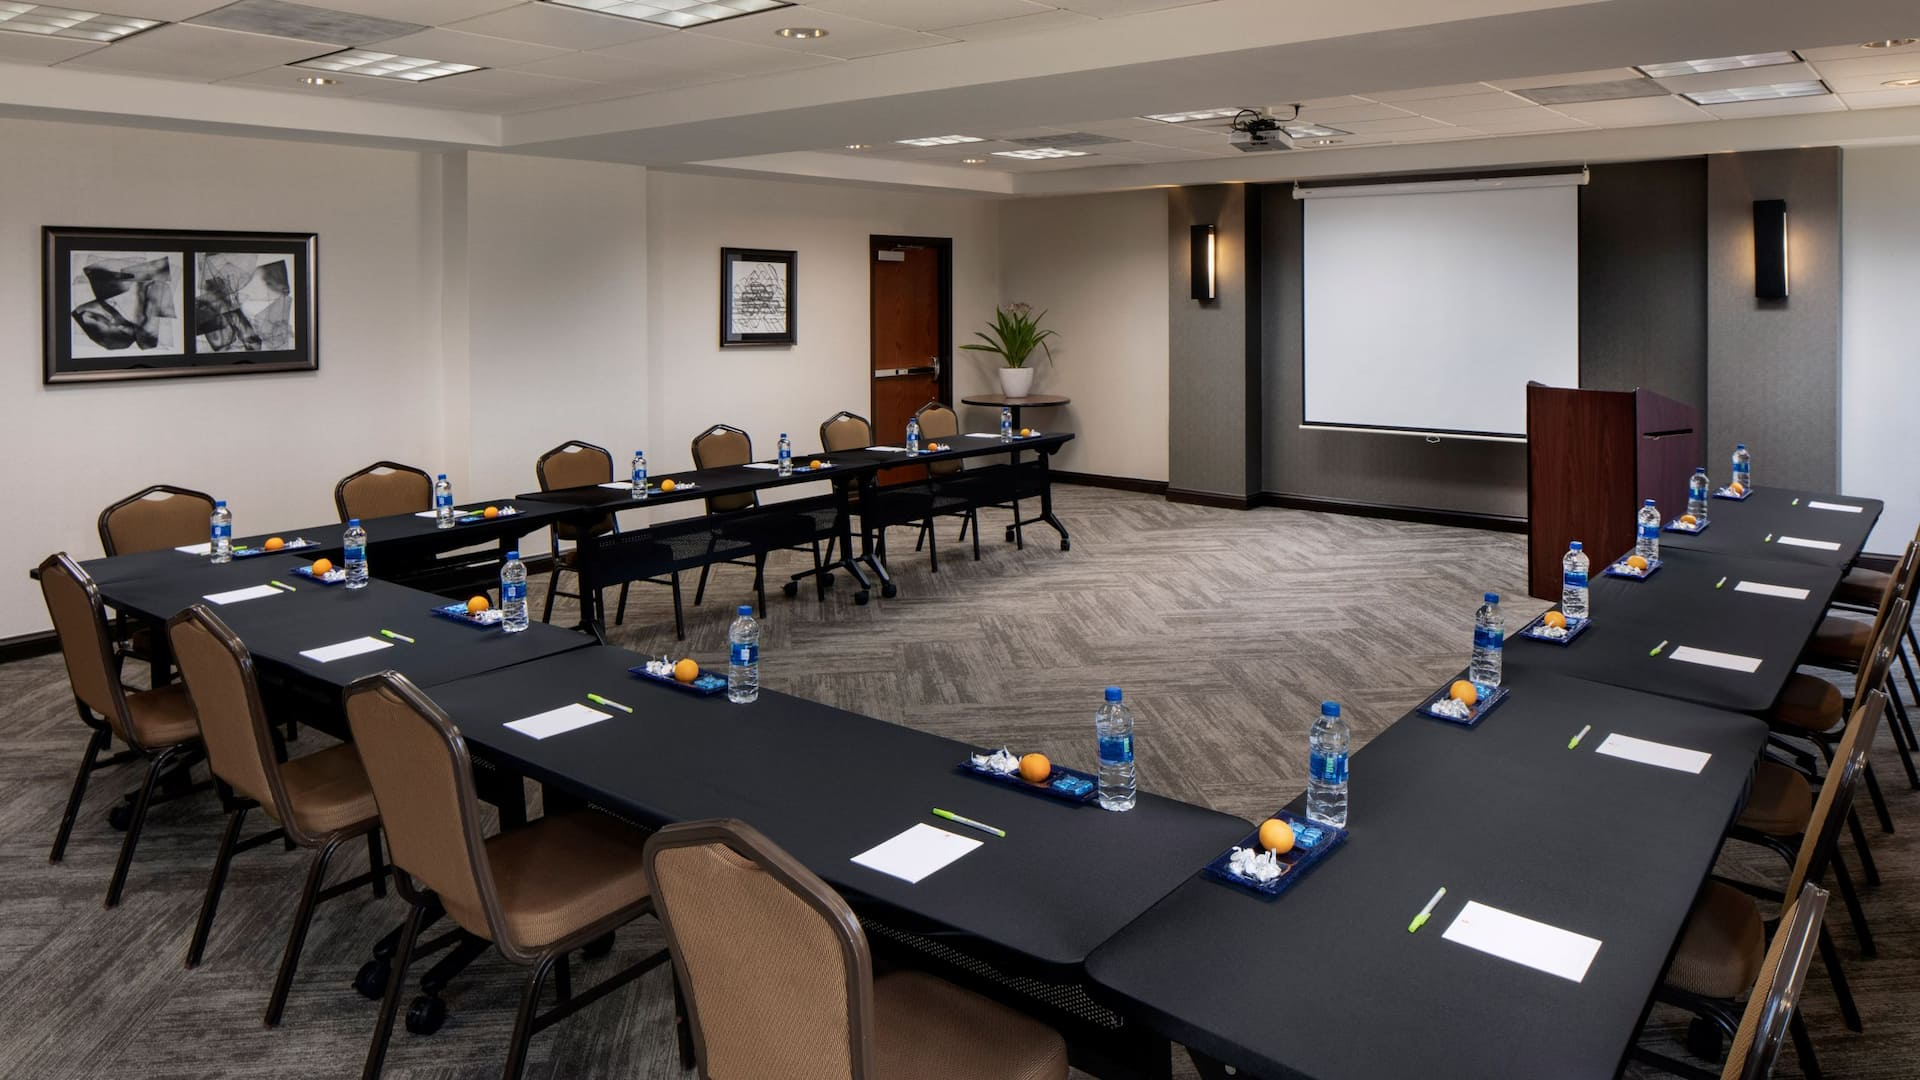 U shaped meeting room